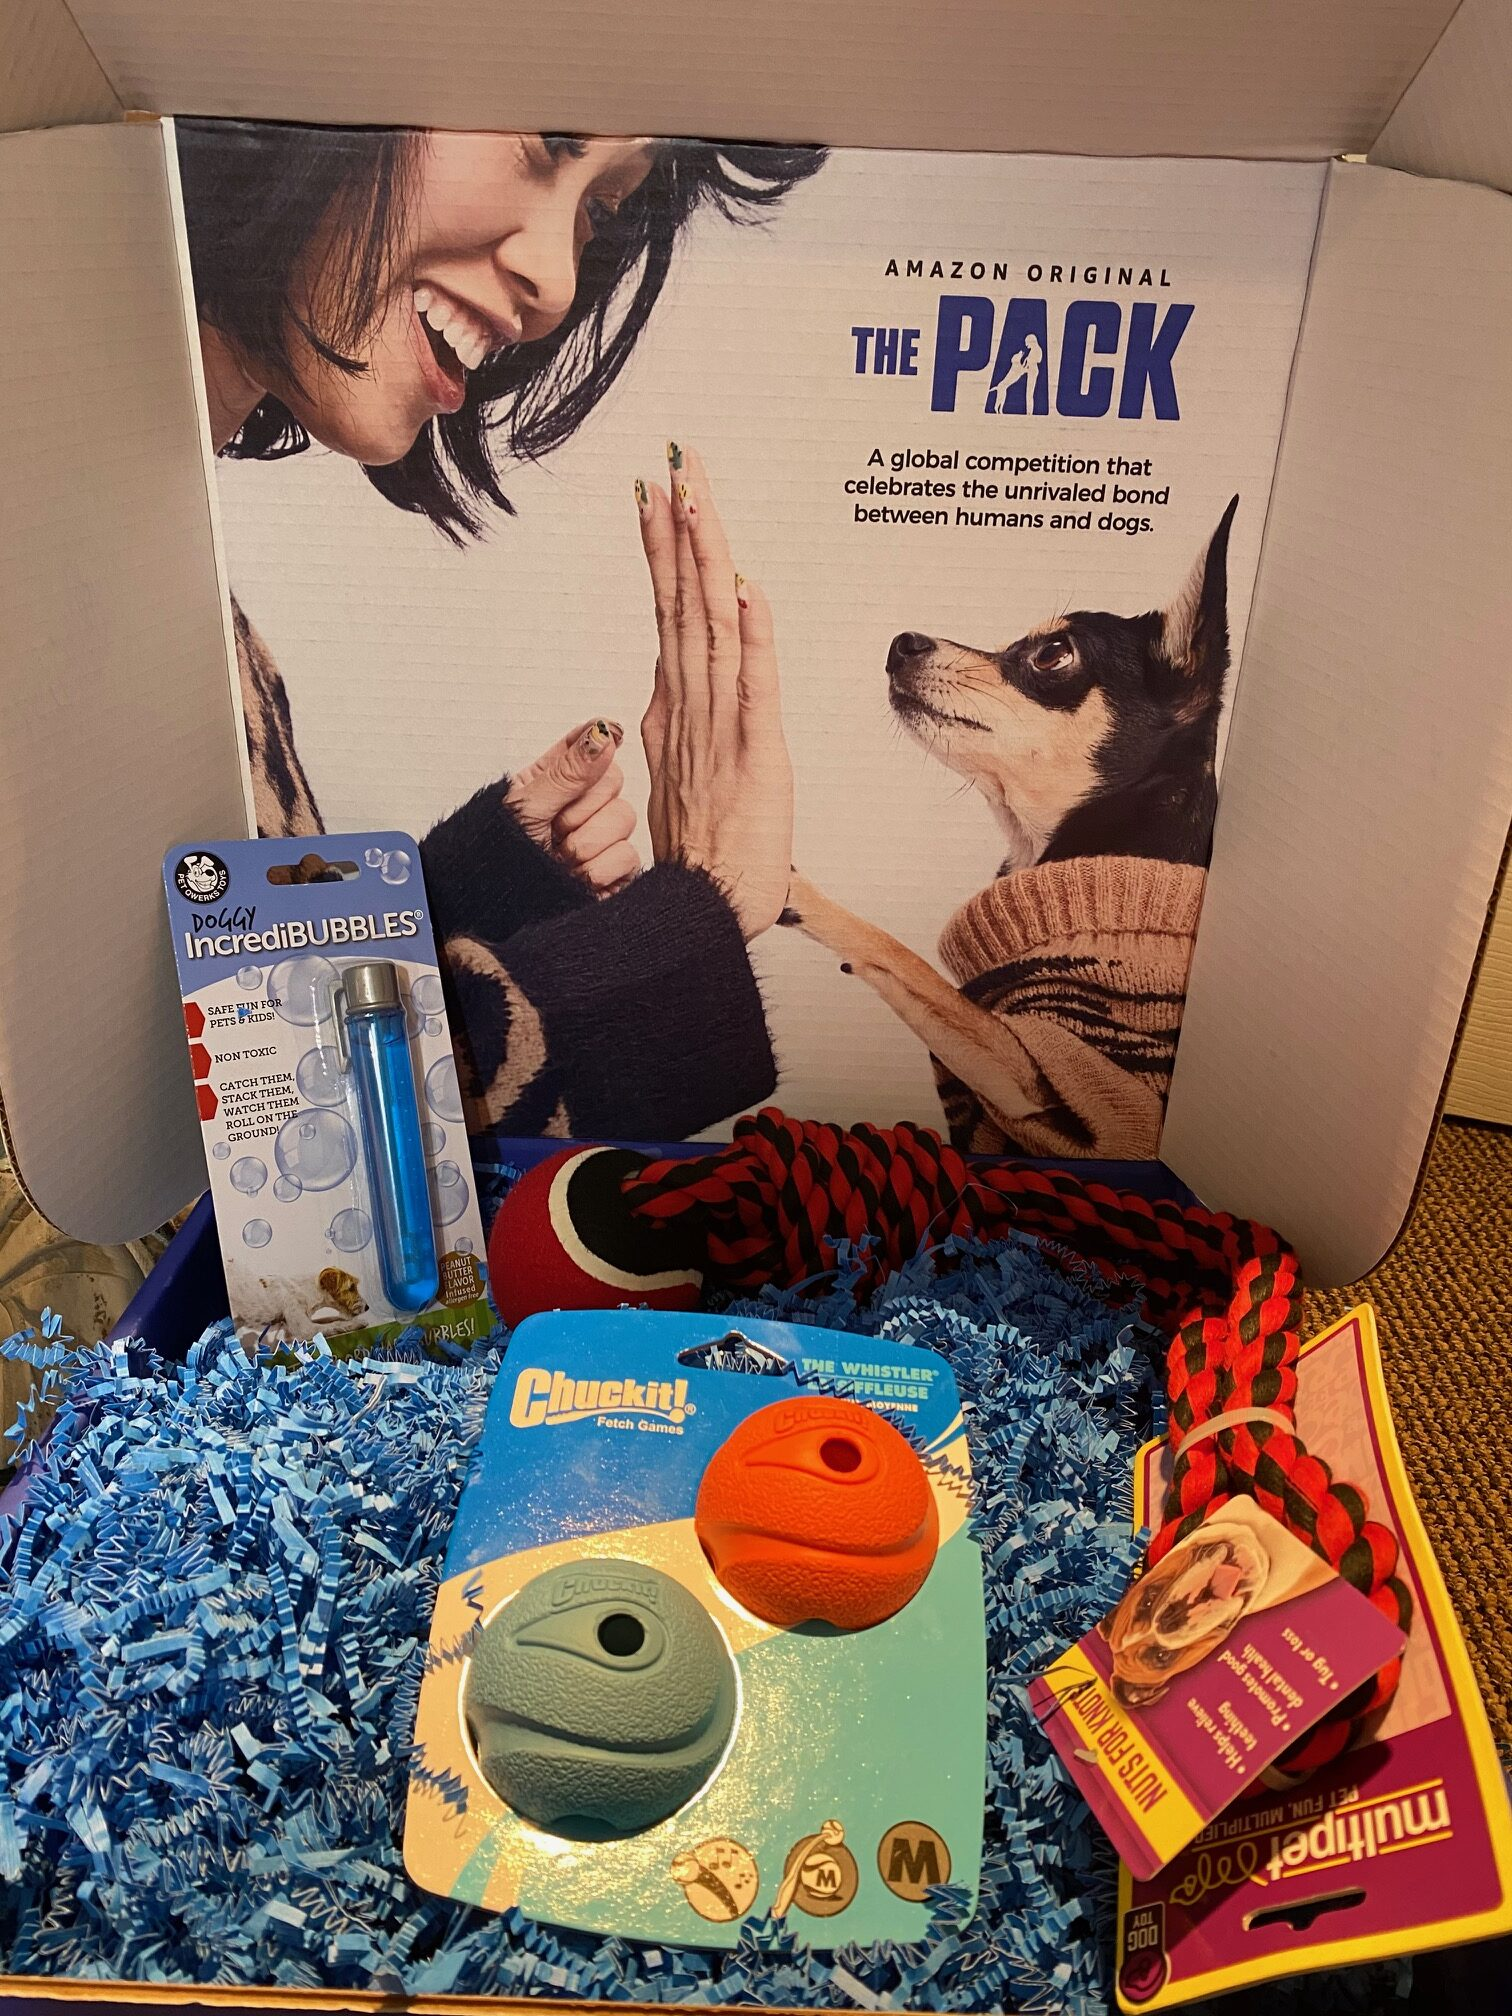 The Pack on Amazon Prime Video Babblebox contents image